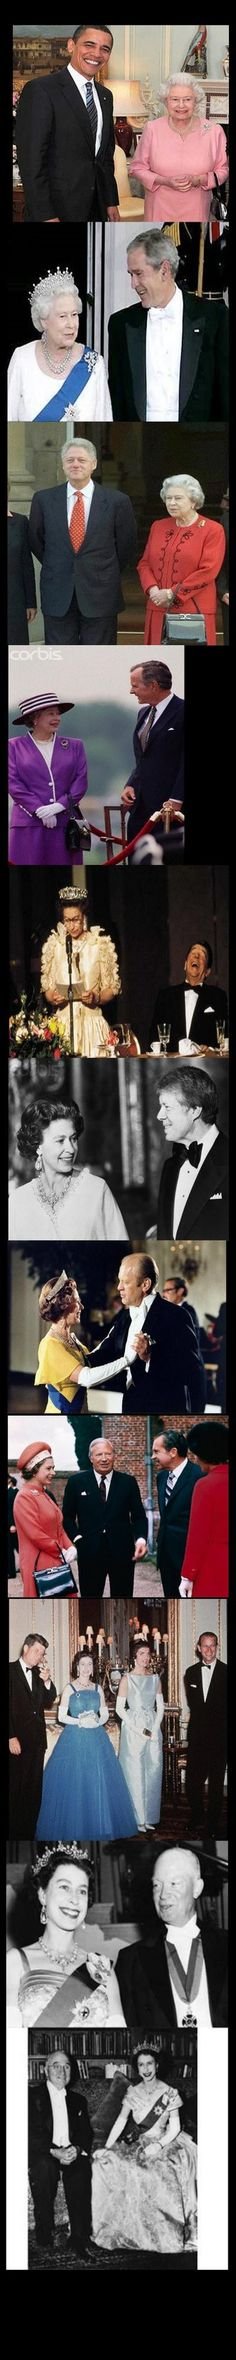 The queen ღf England thrღugh the years.  Let's hope she outlives this President to erase the memories of receiving an iPod filled with his speeches and capture a new photo with a more qualified and dignified POTUS. She has seen it ALL hasn't she?